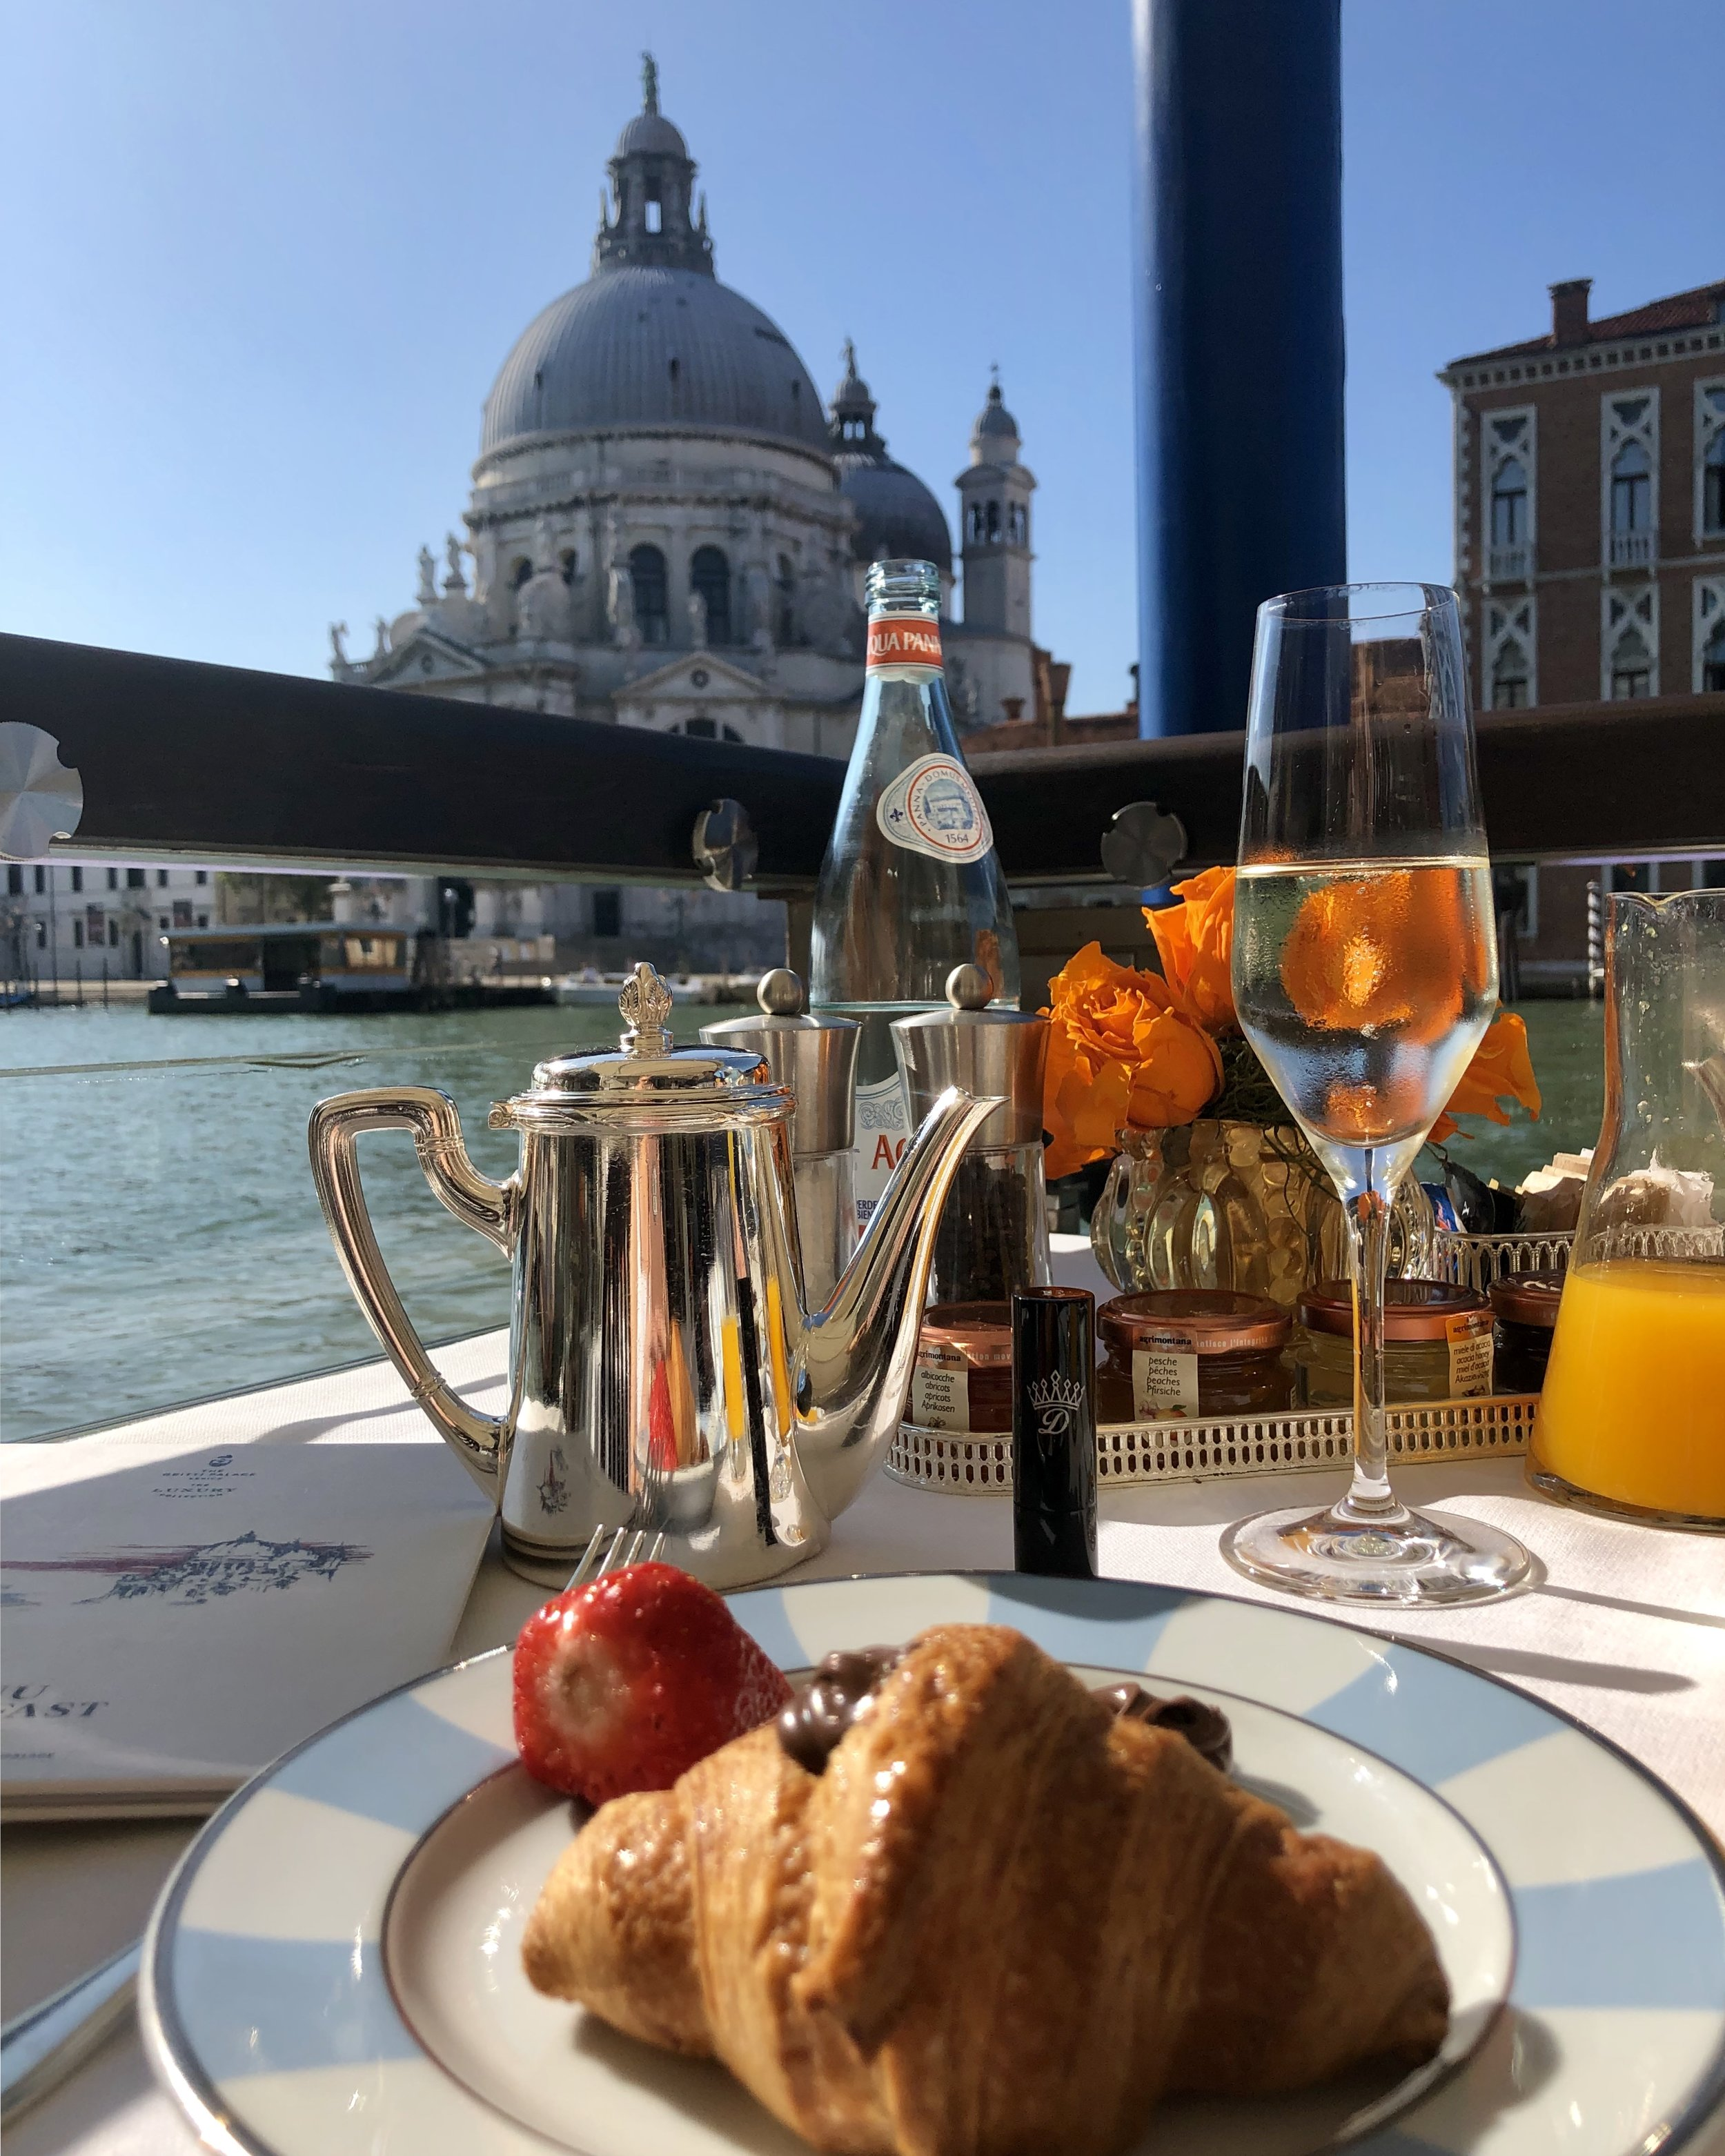 Breakfast at The Gritti Palace Luxury Hotel Venice